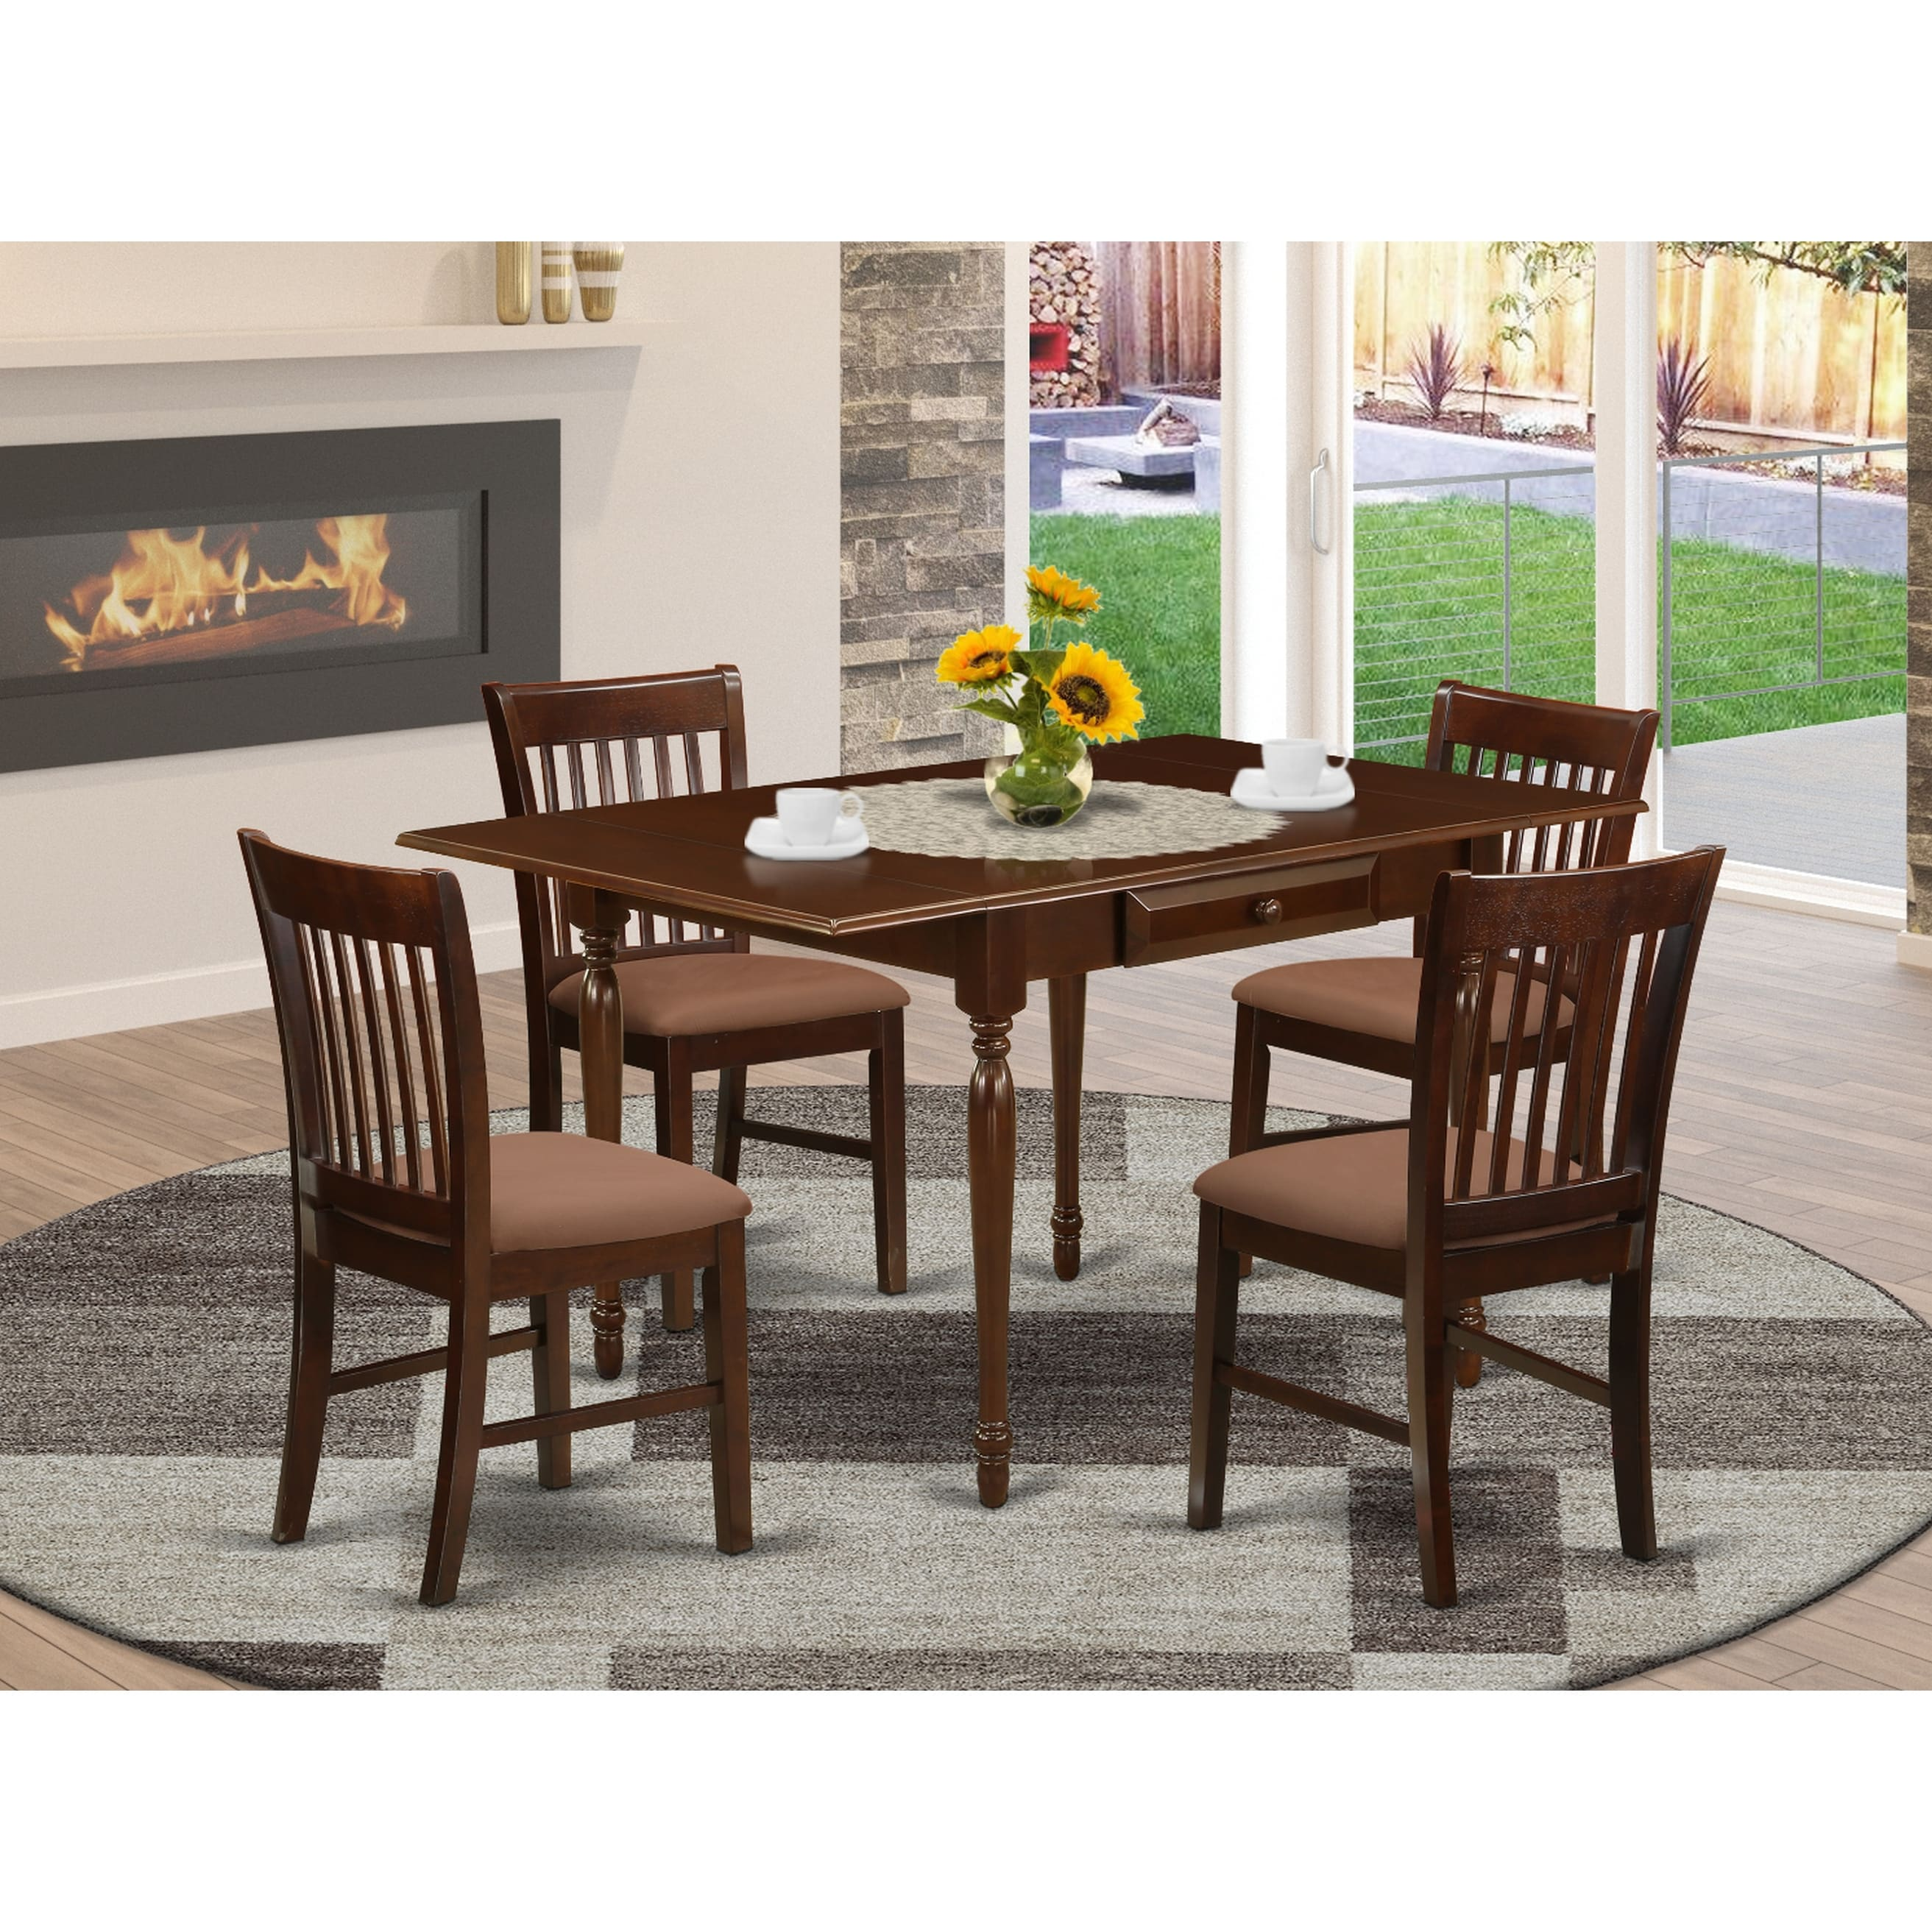 Solid Wood Dining Table And Chocolate Linen Fabric Upholstery Seat Kitchen Dining Chairs Number Of Chairs Option On Sale Overstock 32448377